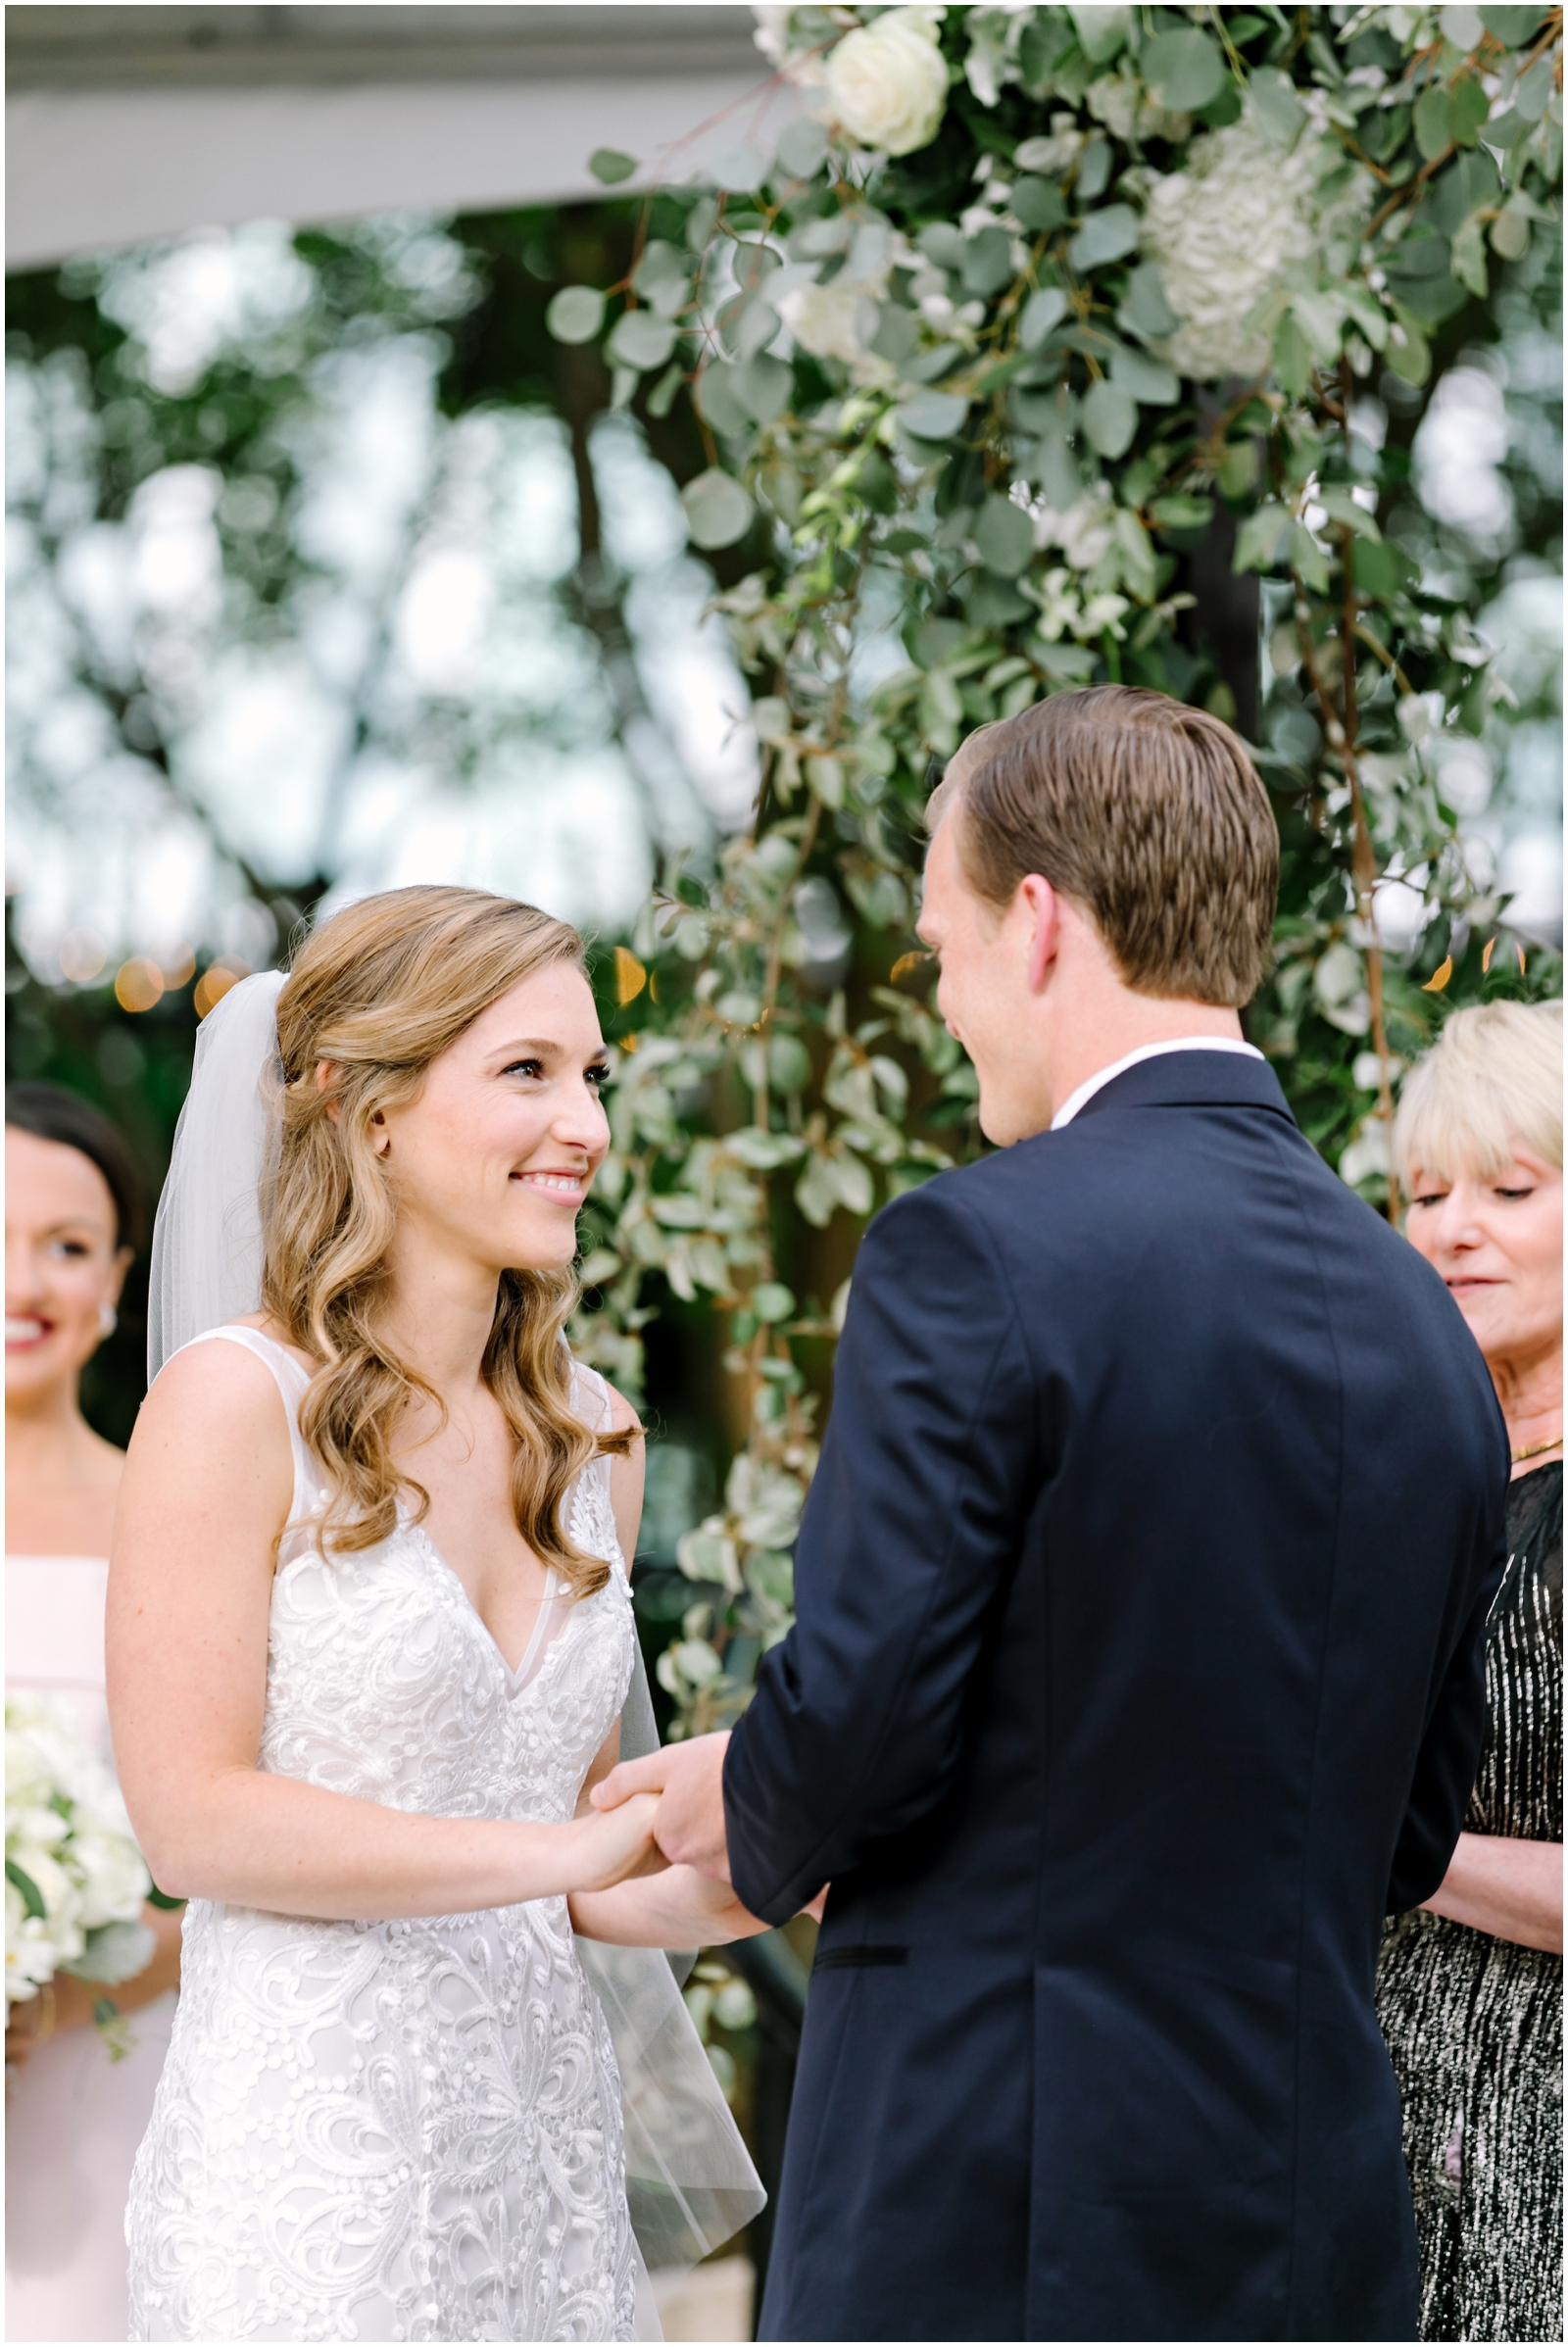 Garden wedding ceremony in Texas